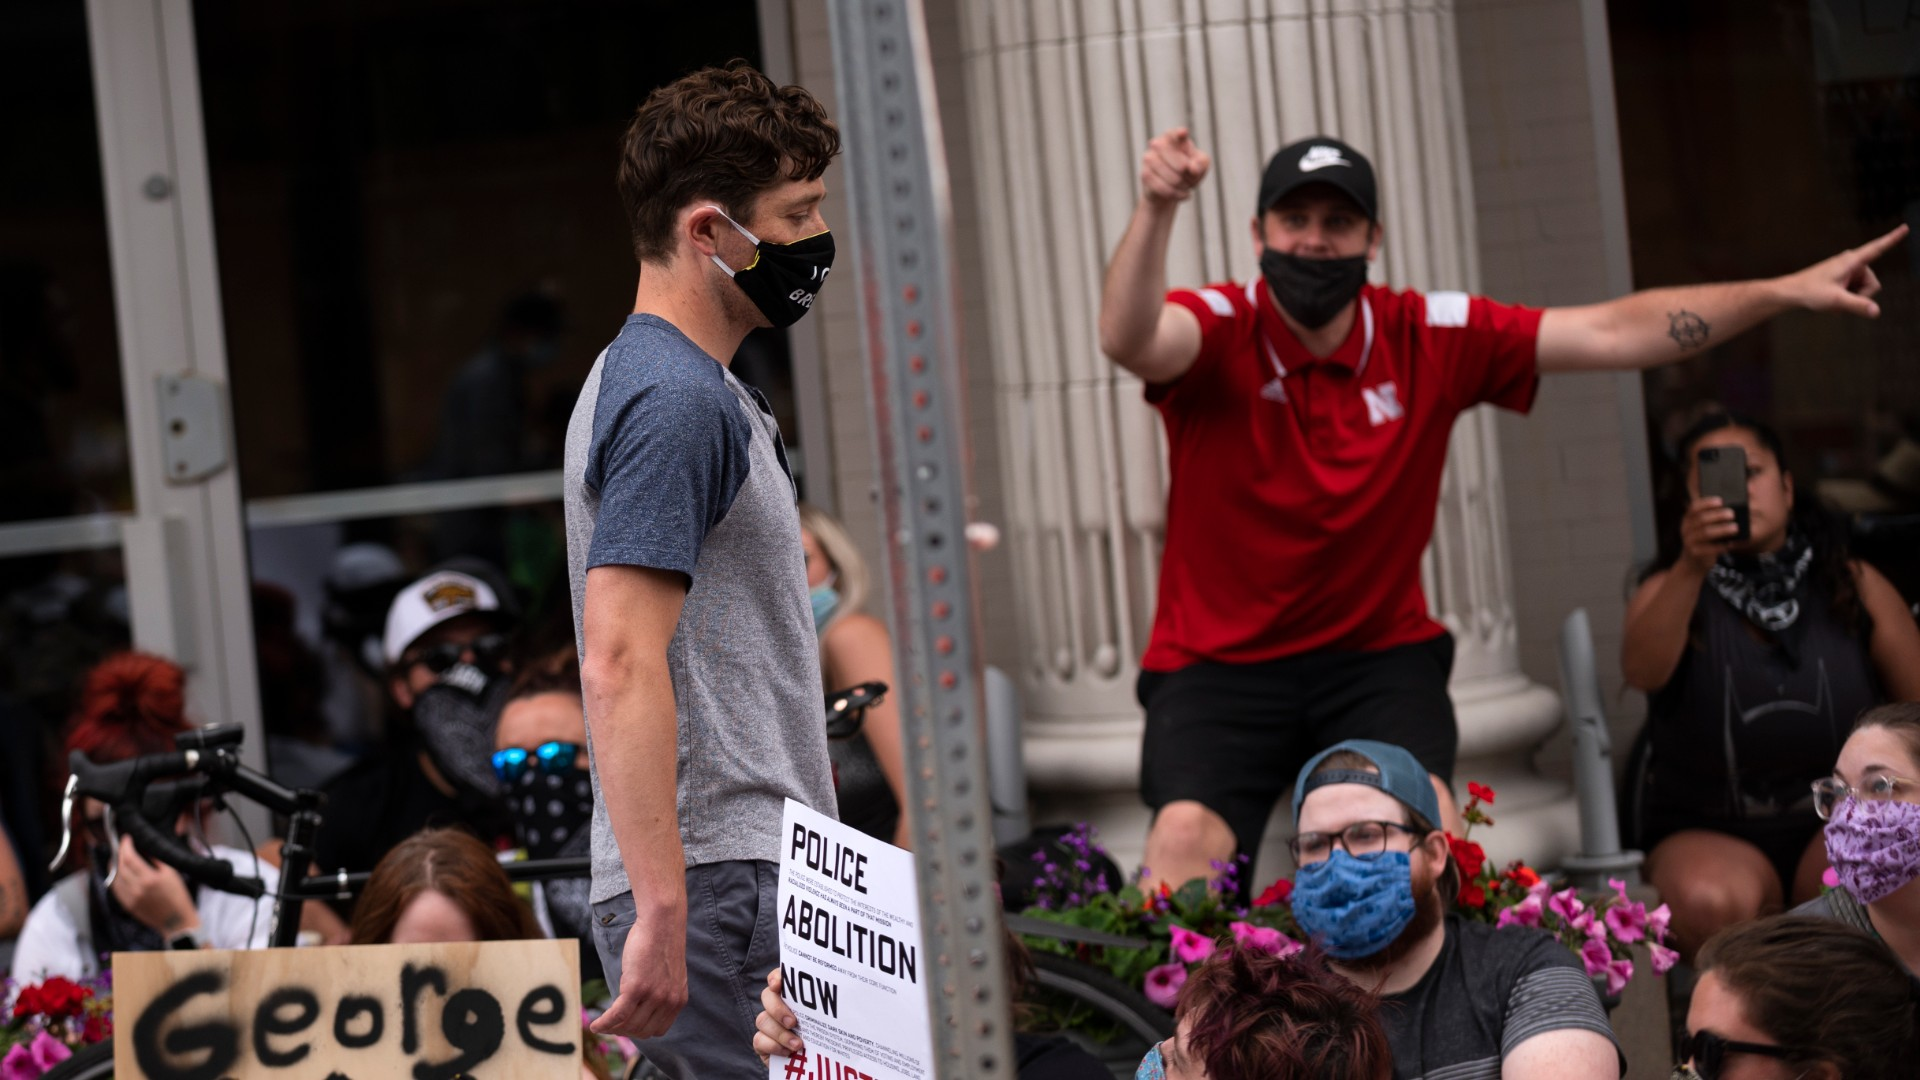 Minneapolis Mayor Jacob Frey leaves a demonstration calling for the Minneapolis Police Department to be defunded on June 6, 2020 in Minneapolis, Minnesota. Mayor Frey declined when he was asked if he would fully defund the police and was then asked to leave the protest. (Stephen Maturen/Getty Images)